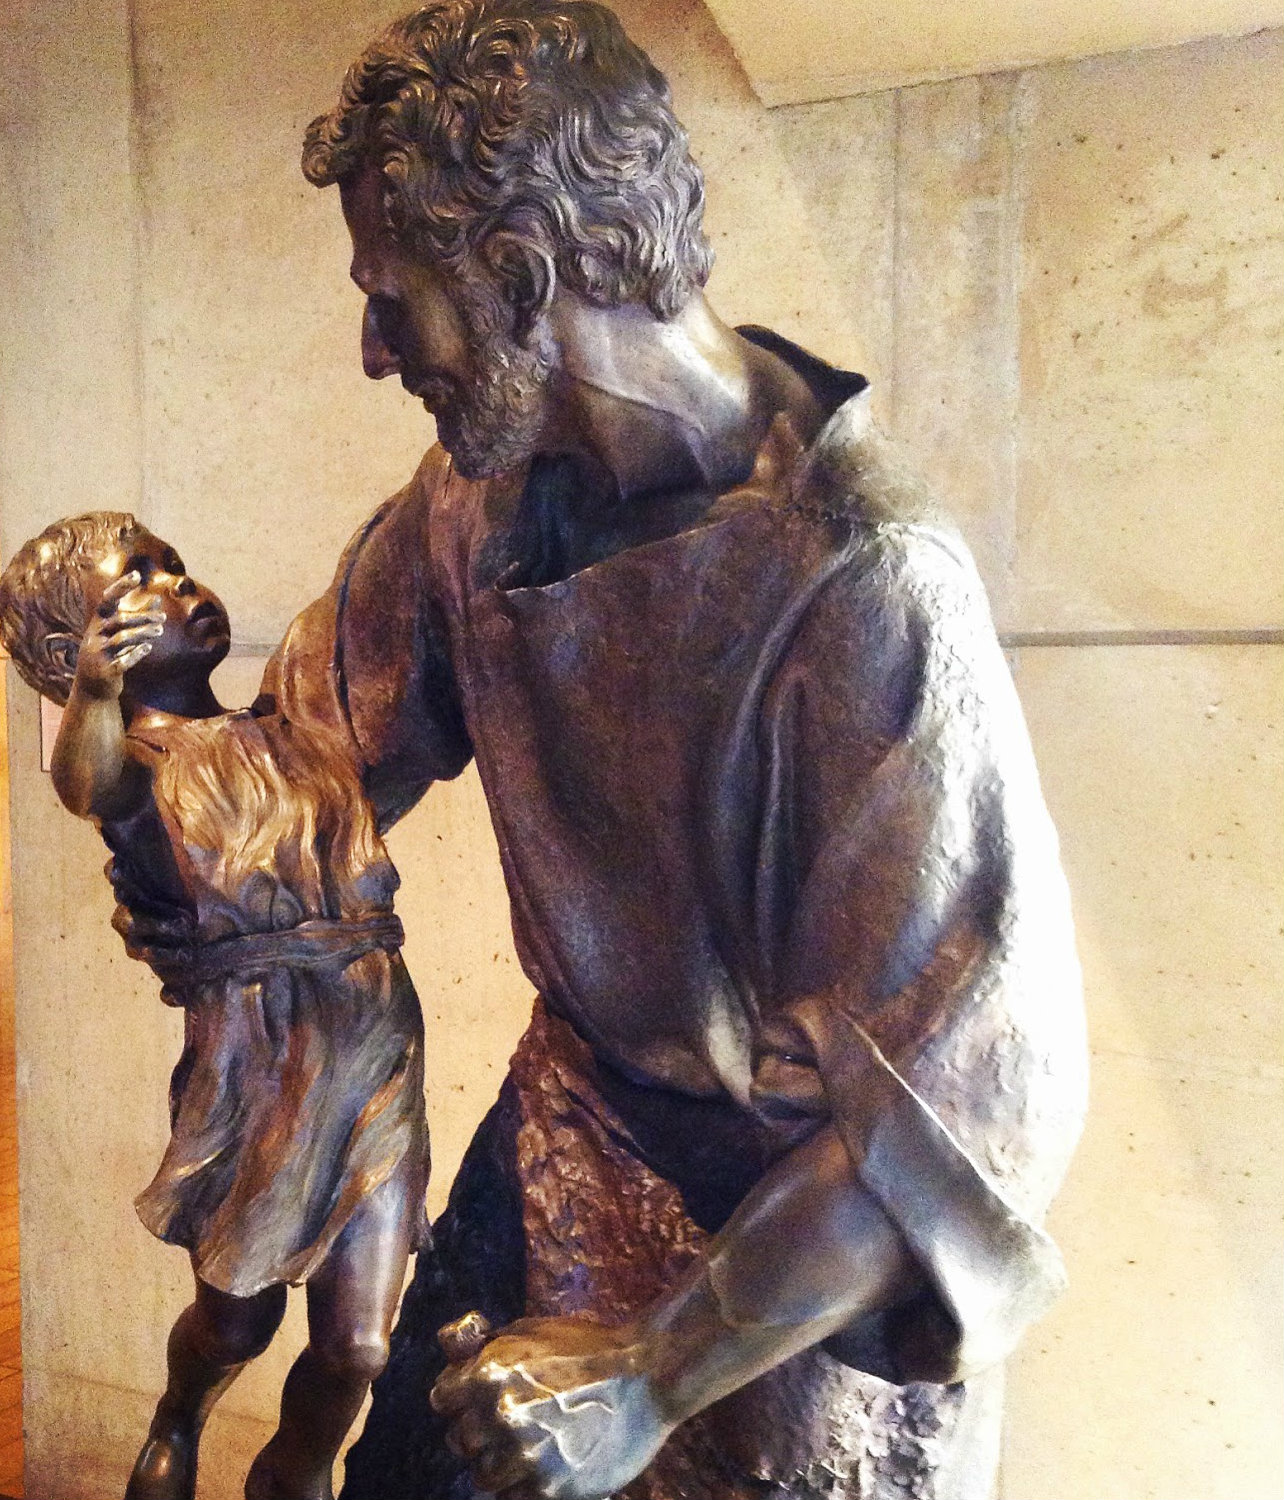 solemnity of saint st joseph day March 19 fourth 4th sunday of advent cycle A faith